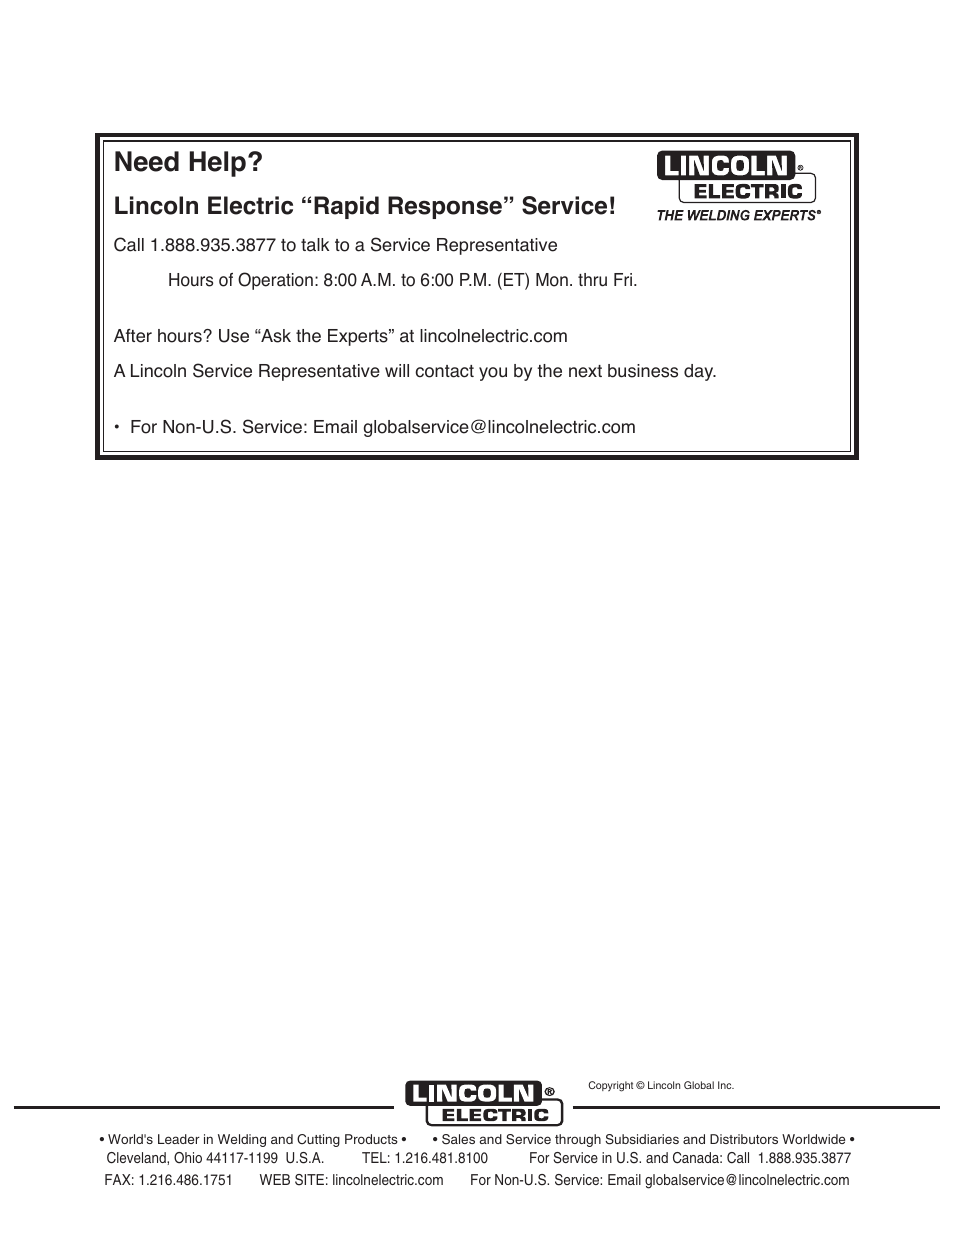 """Need help, Lincoln electric """"rapid response"""" service   Lincoln"""